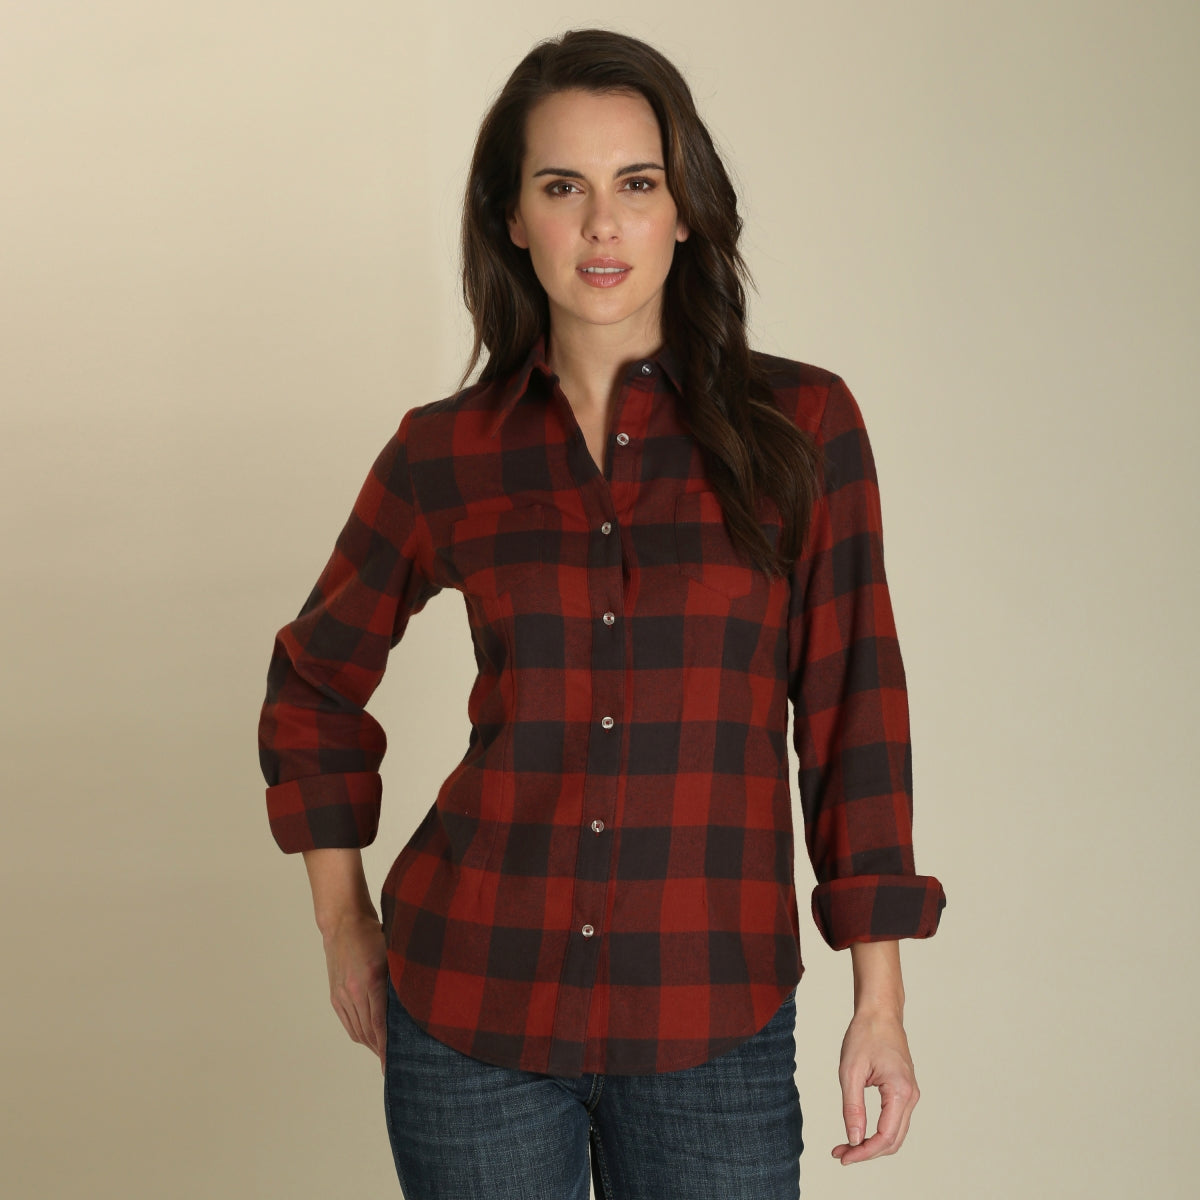 595e159d3 Wrangler Women's Red & Black Plaid Button Up Western Shirt LRW430M   Cowboy  Boots and Western Clothing   Painted Cowgirl Western Store